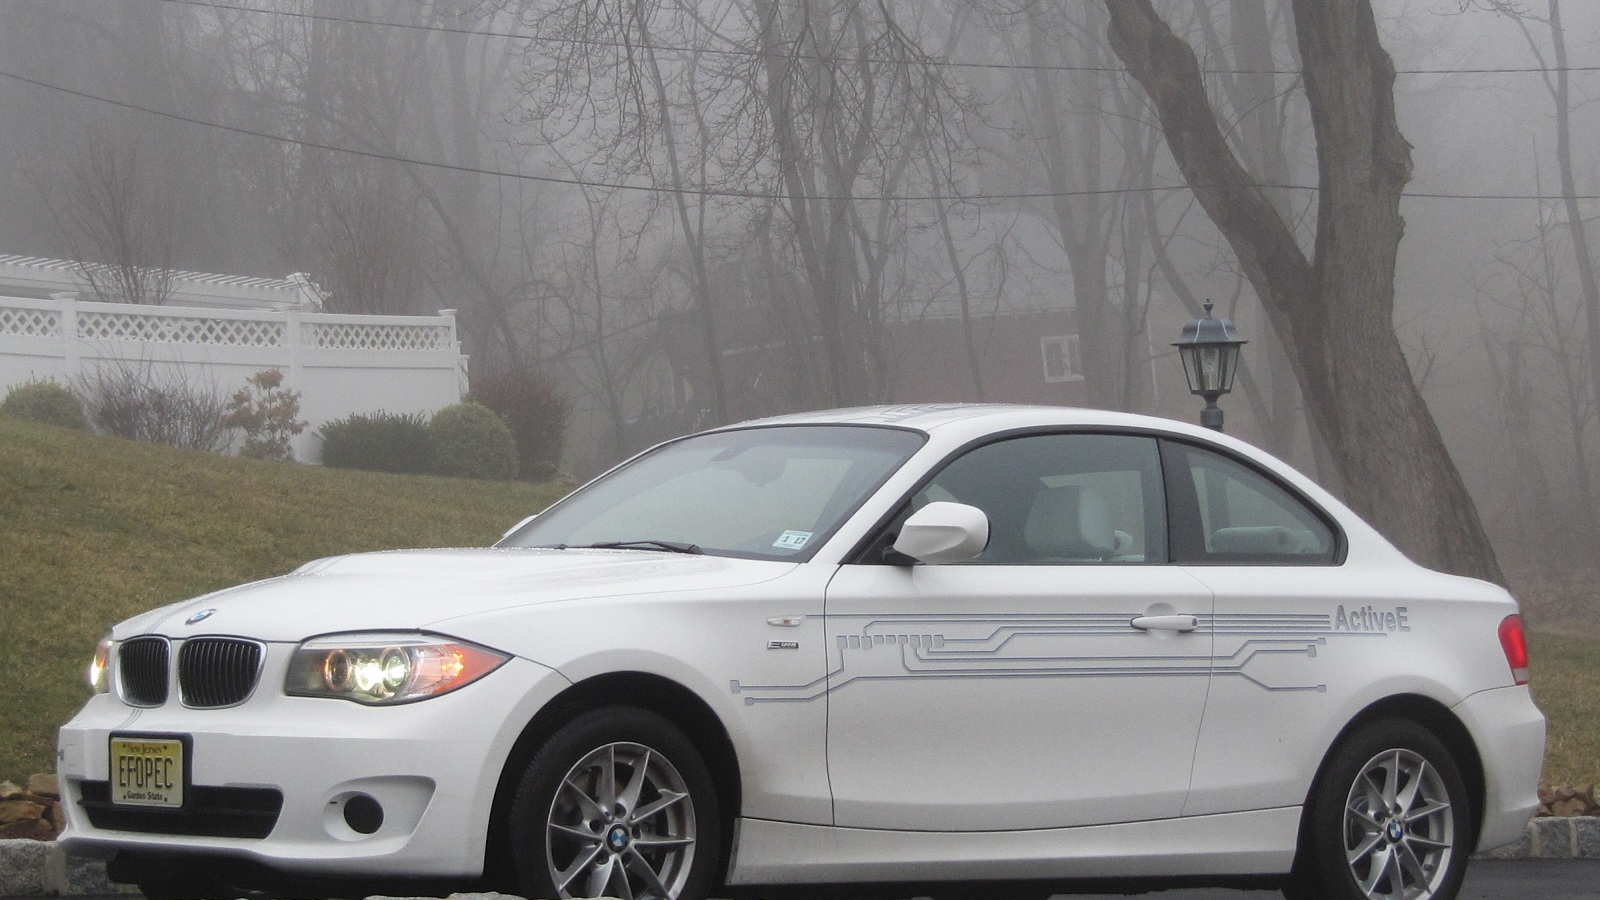 BMW ActiveE electric car, January 2012, New Jersey